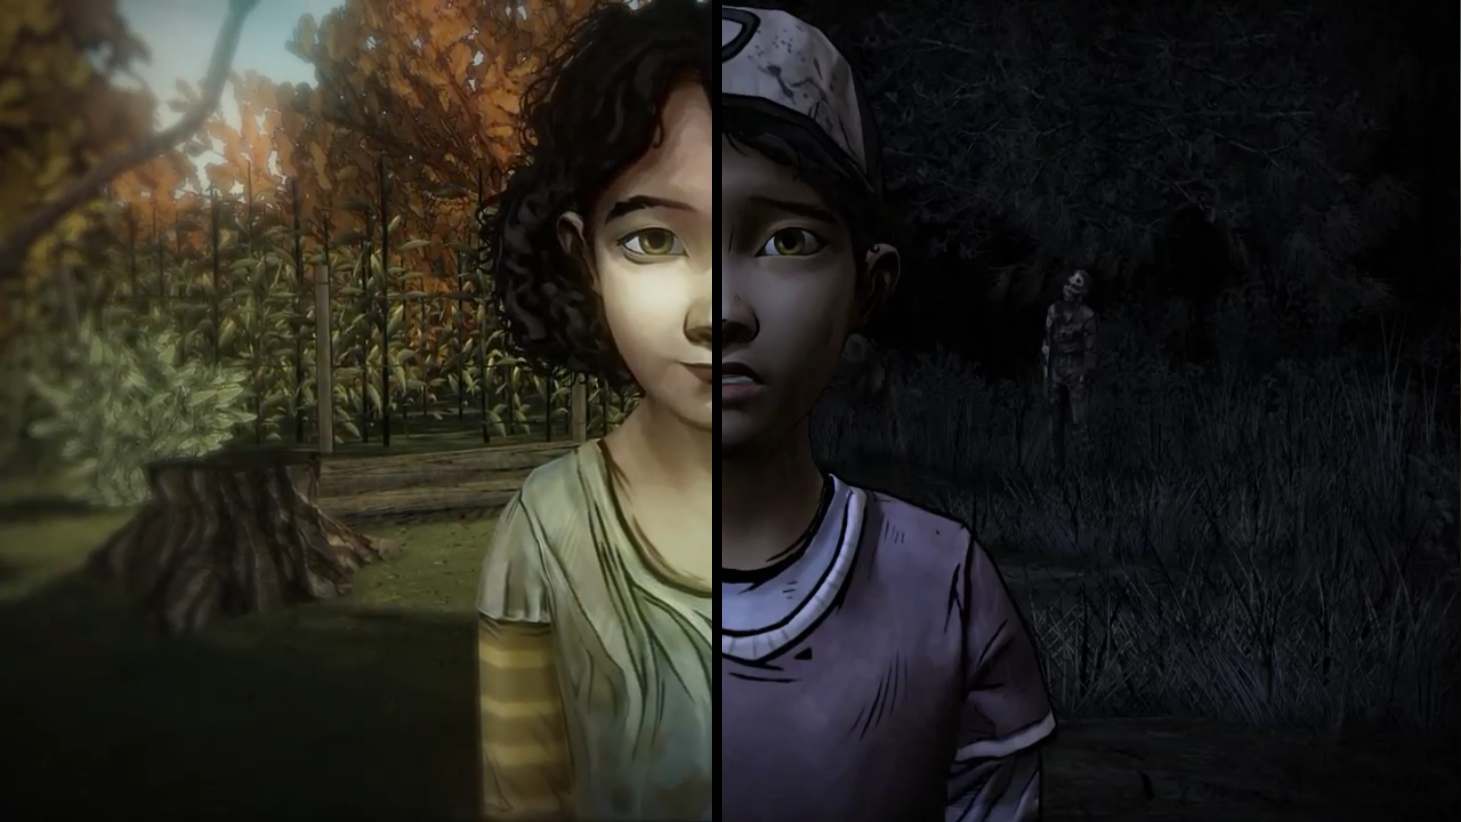 Free download Sides Clementine The Walking Dead Season 2 by